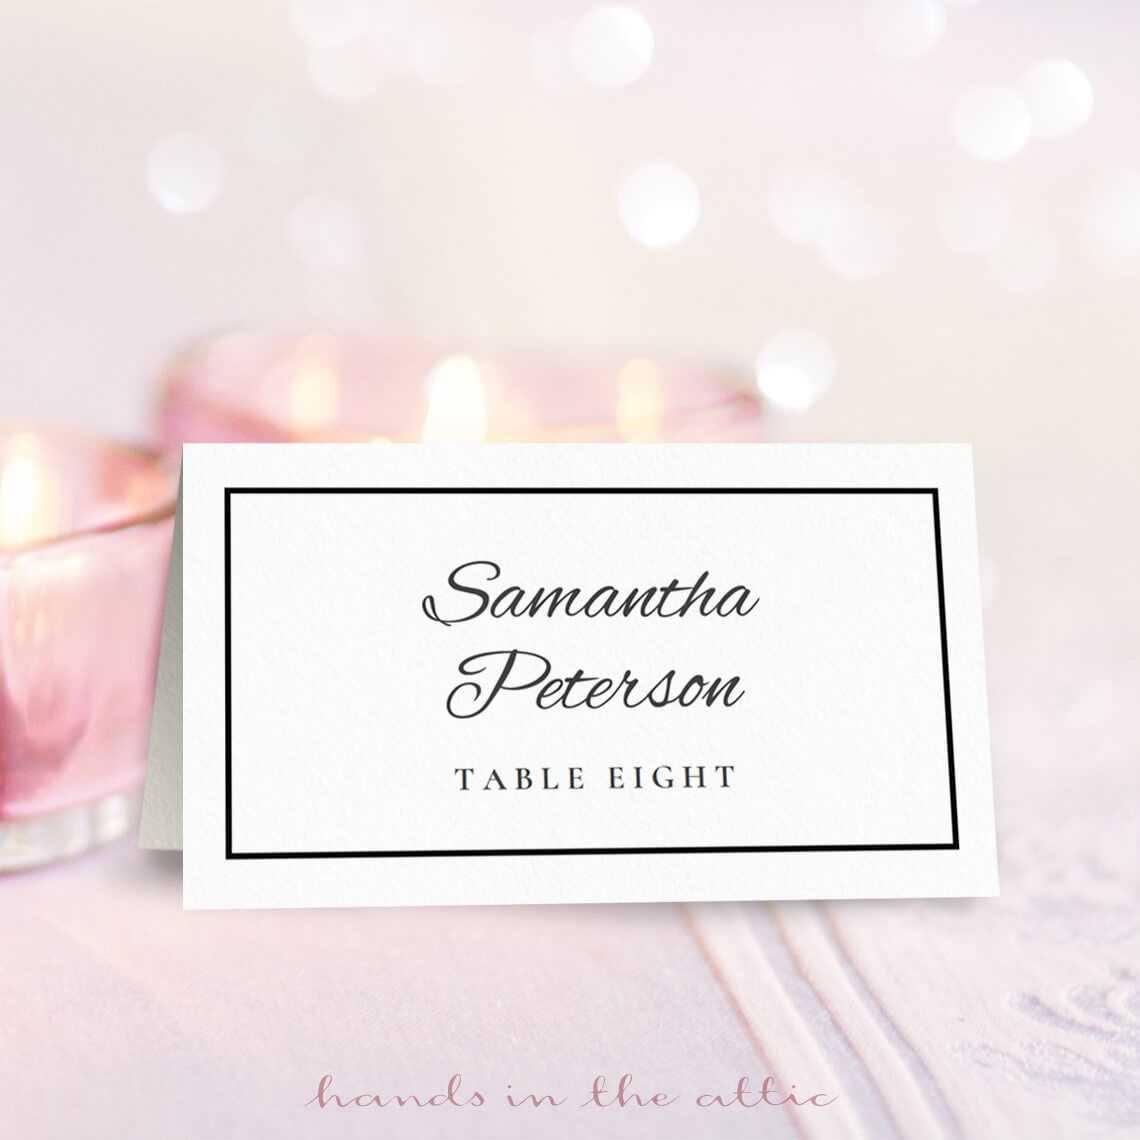 Wedding Place Card Template | Free On Handsintheattic With Free Place Card Templates Download